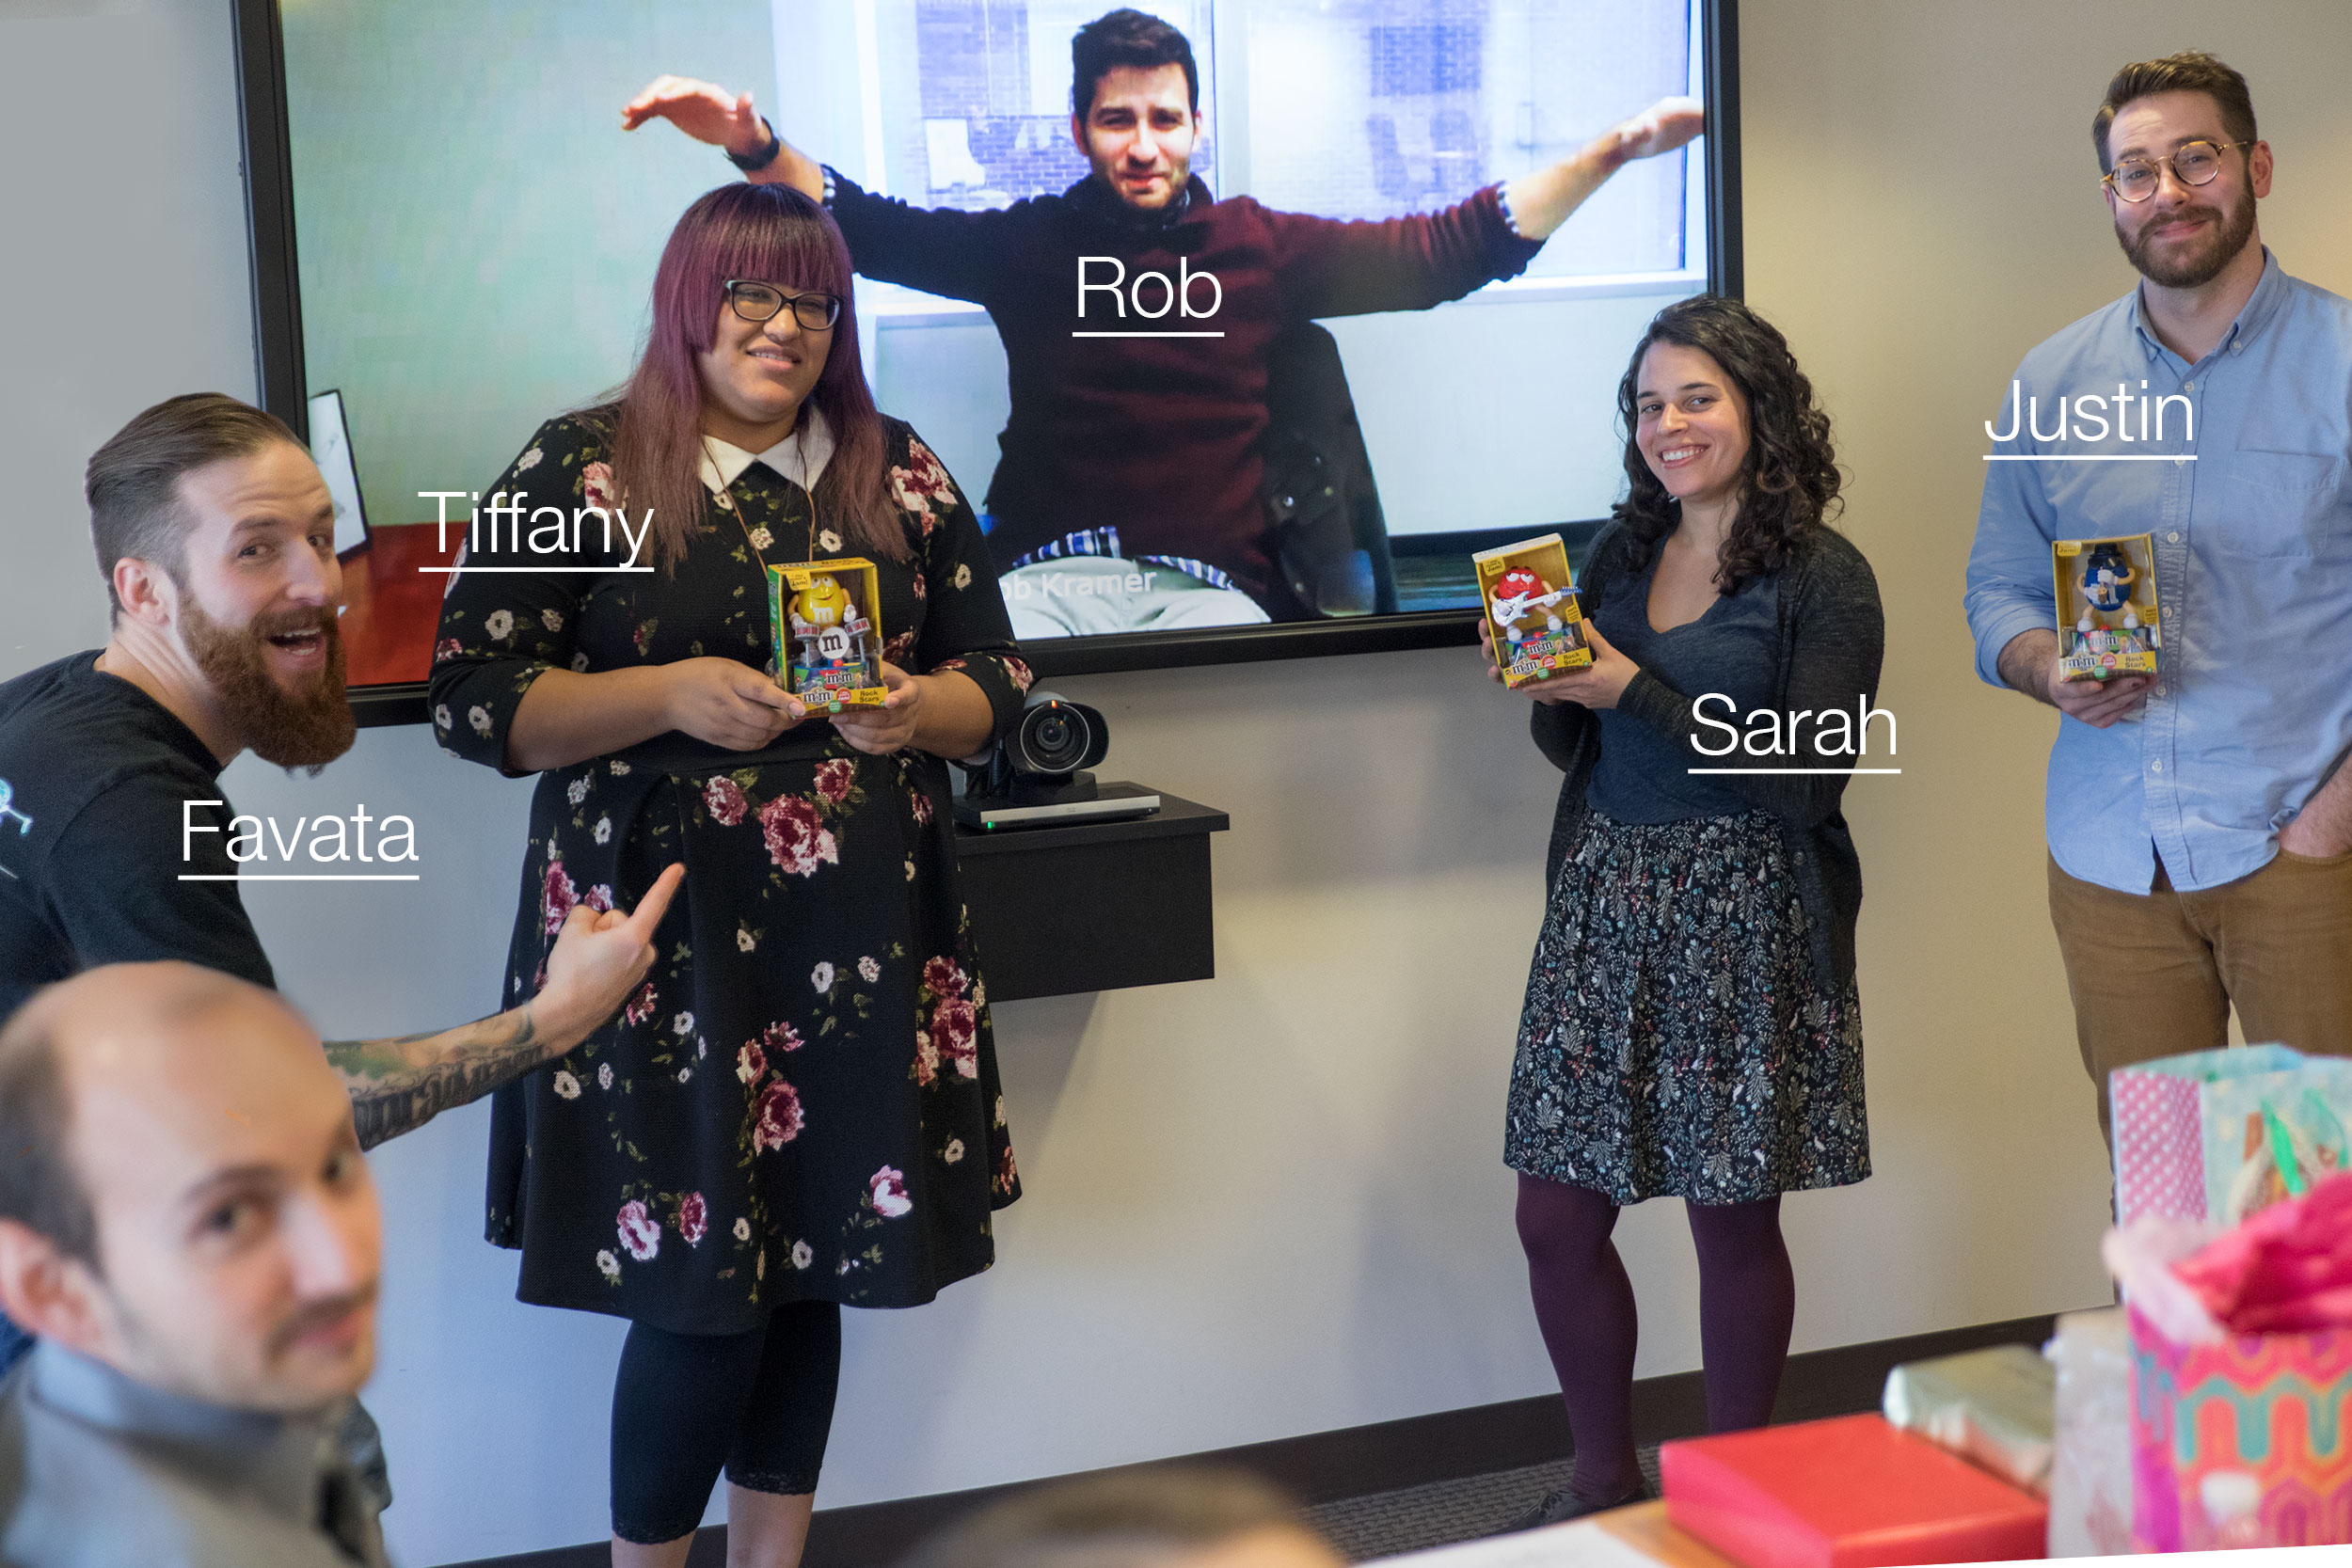 Sarah produced the series with Justin on content and Tiffany and Rob on motion.Favata creative directed, and I photobombed throughout.